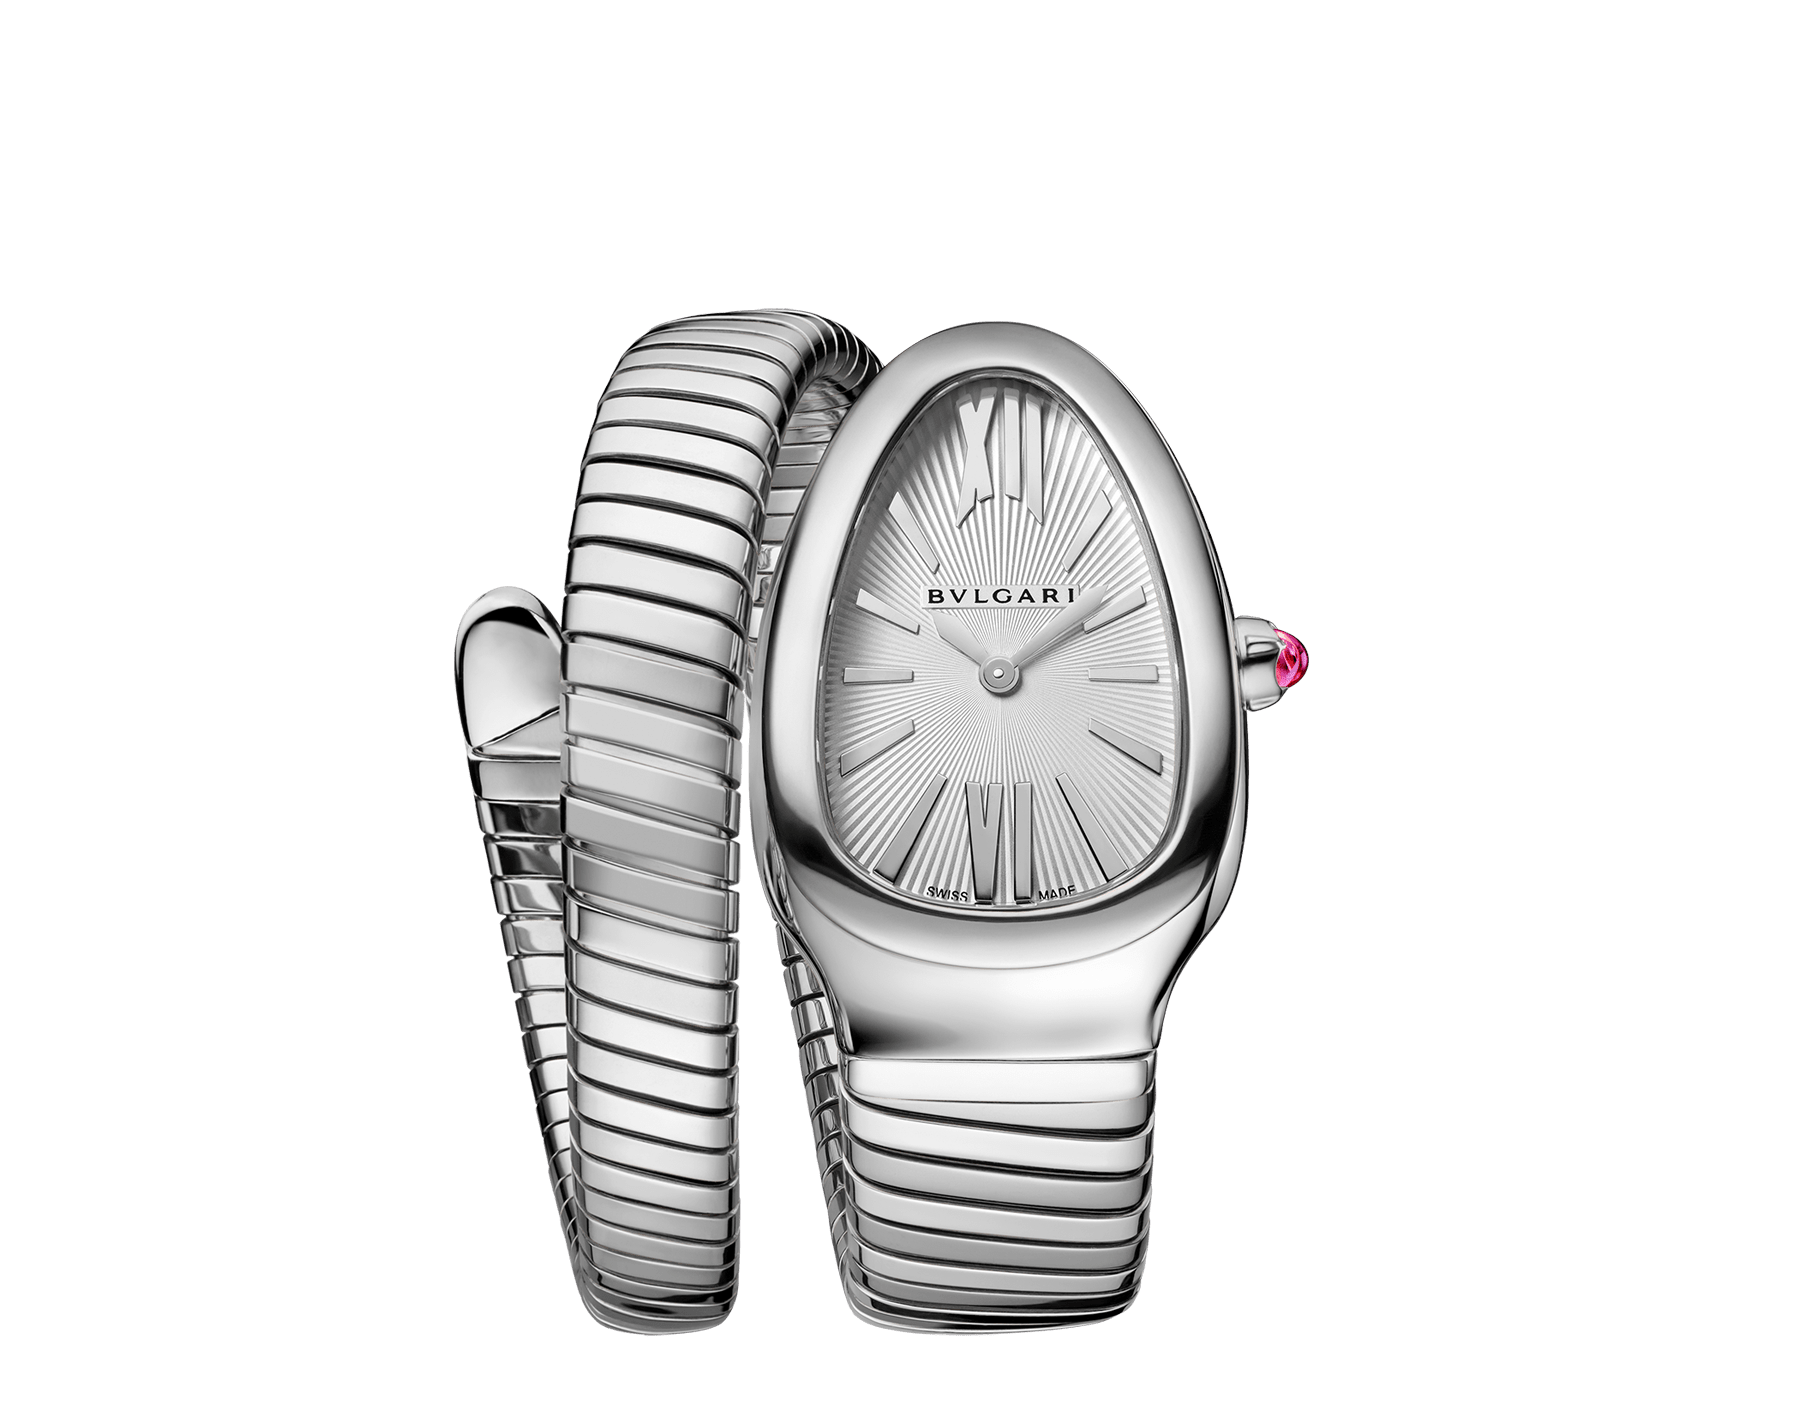 Serpenti Tubogas single spiral watch in stainless steel case and bracelet, with silver opaline dial. Large size. SrpntTubogas-white-dial1 image 1